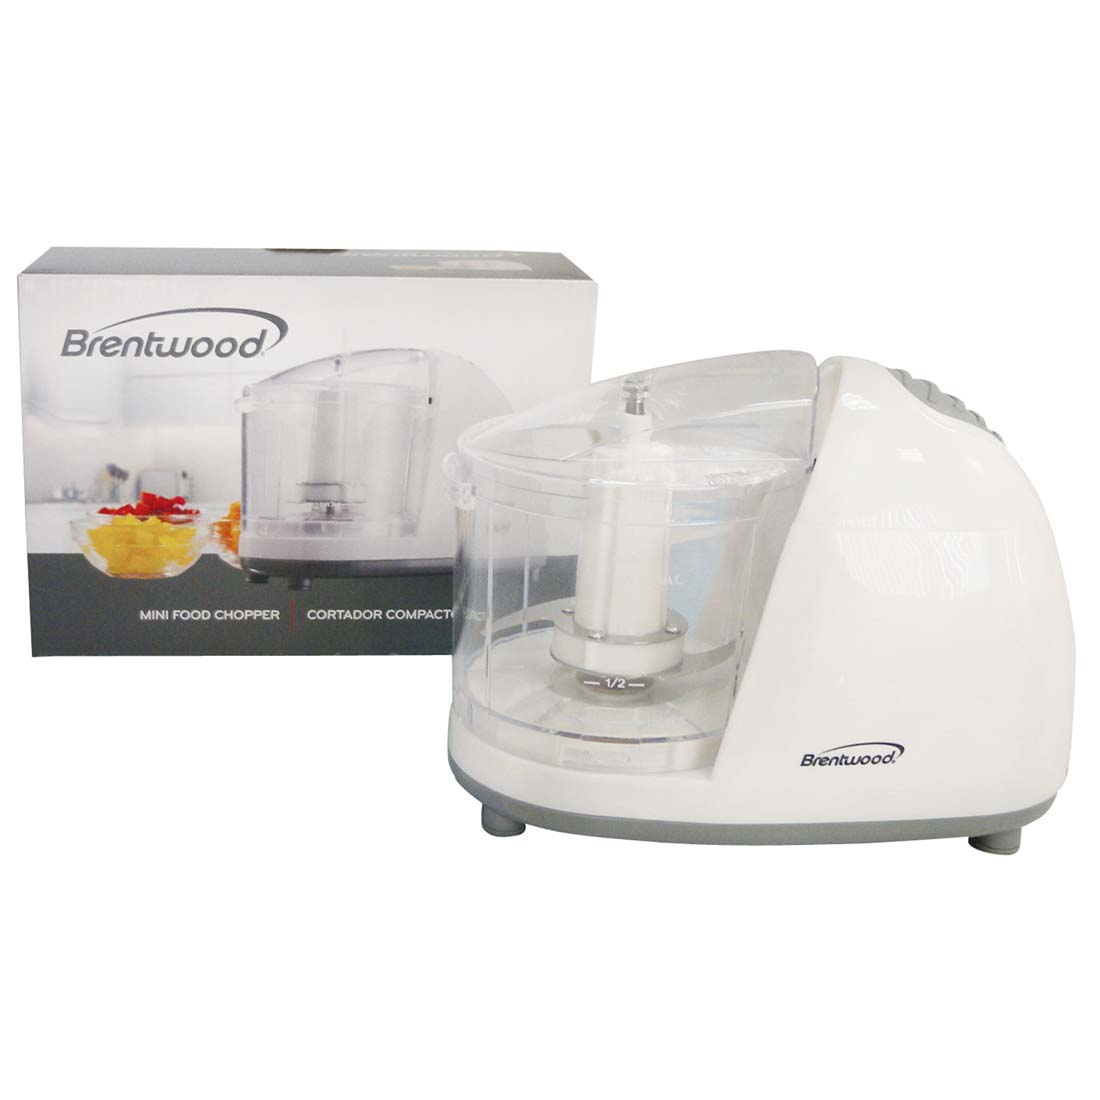 View BRENTWOOD FOOD CHOPPER MINI 1.50 CUP WHITE UL LISTED